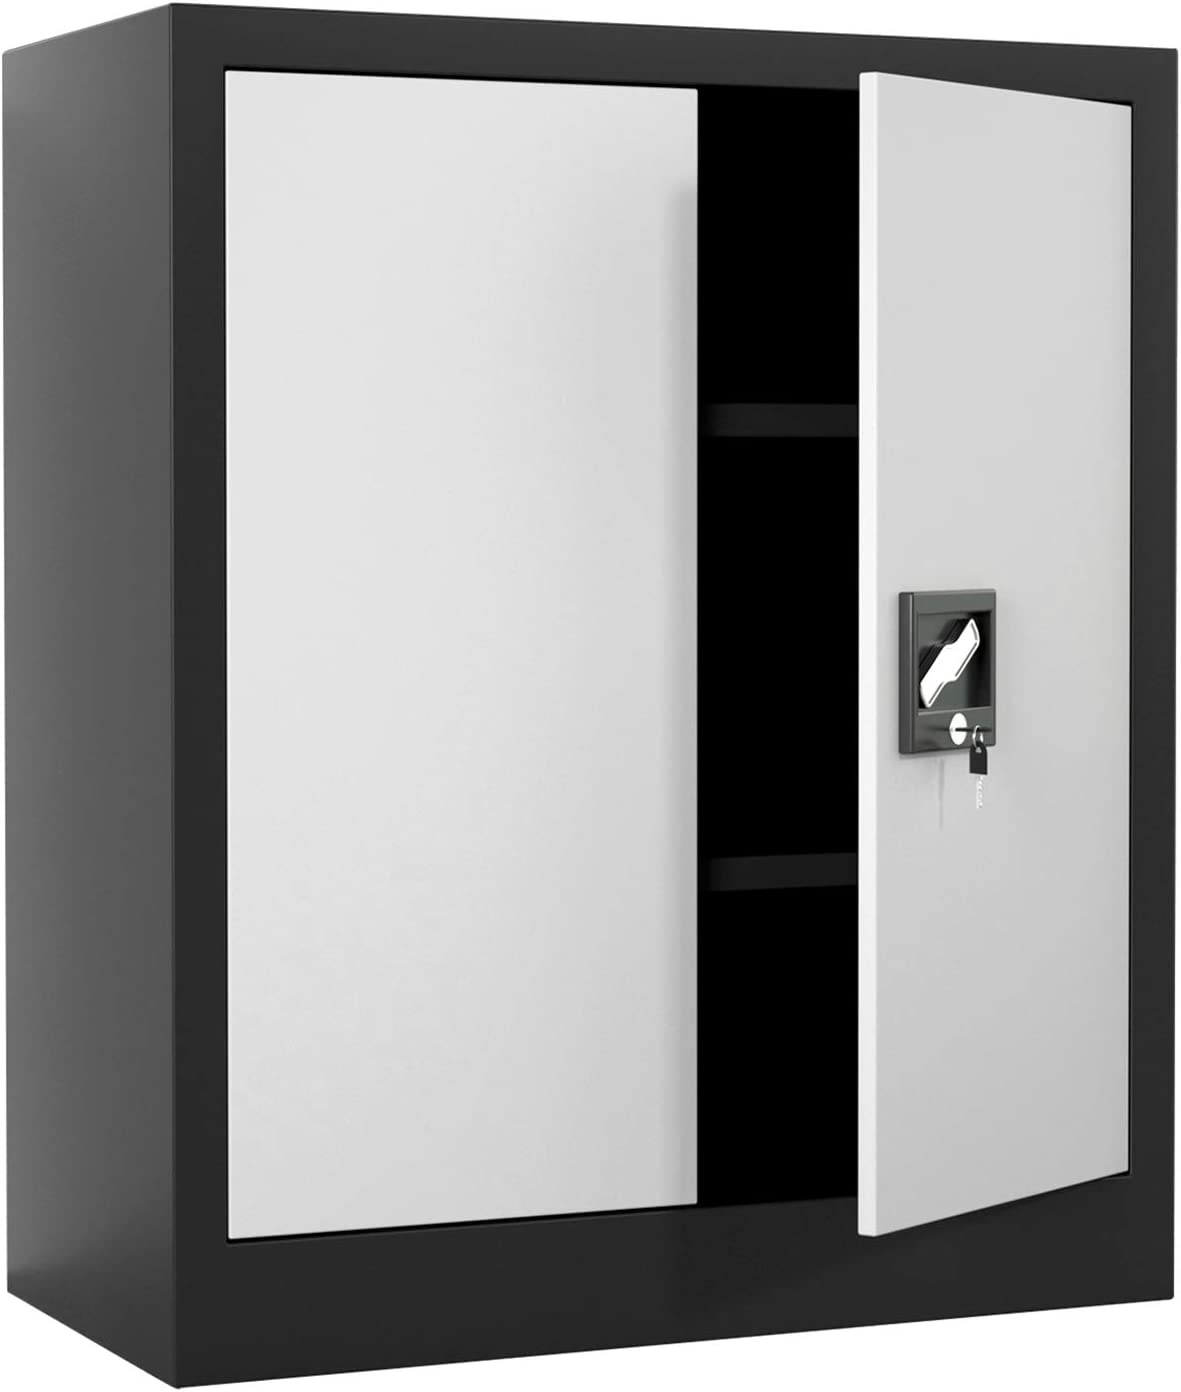 iJINGUR Metal Storage Cabinet with Locking Doors & 2 Height Adjustable Shelves for Office, Garage and Kitchen Pantry (Black & Gray)